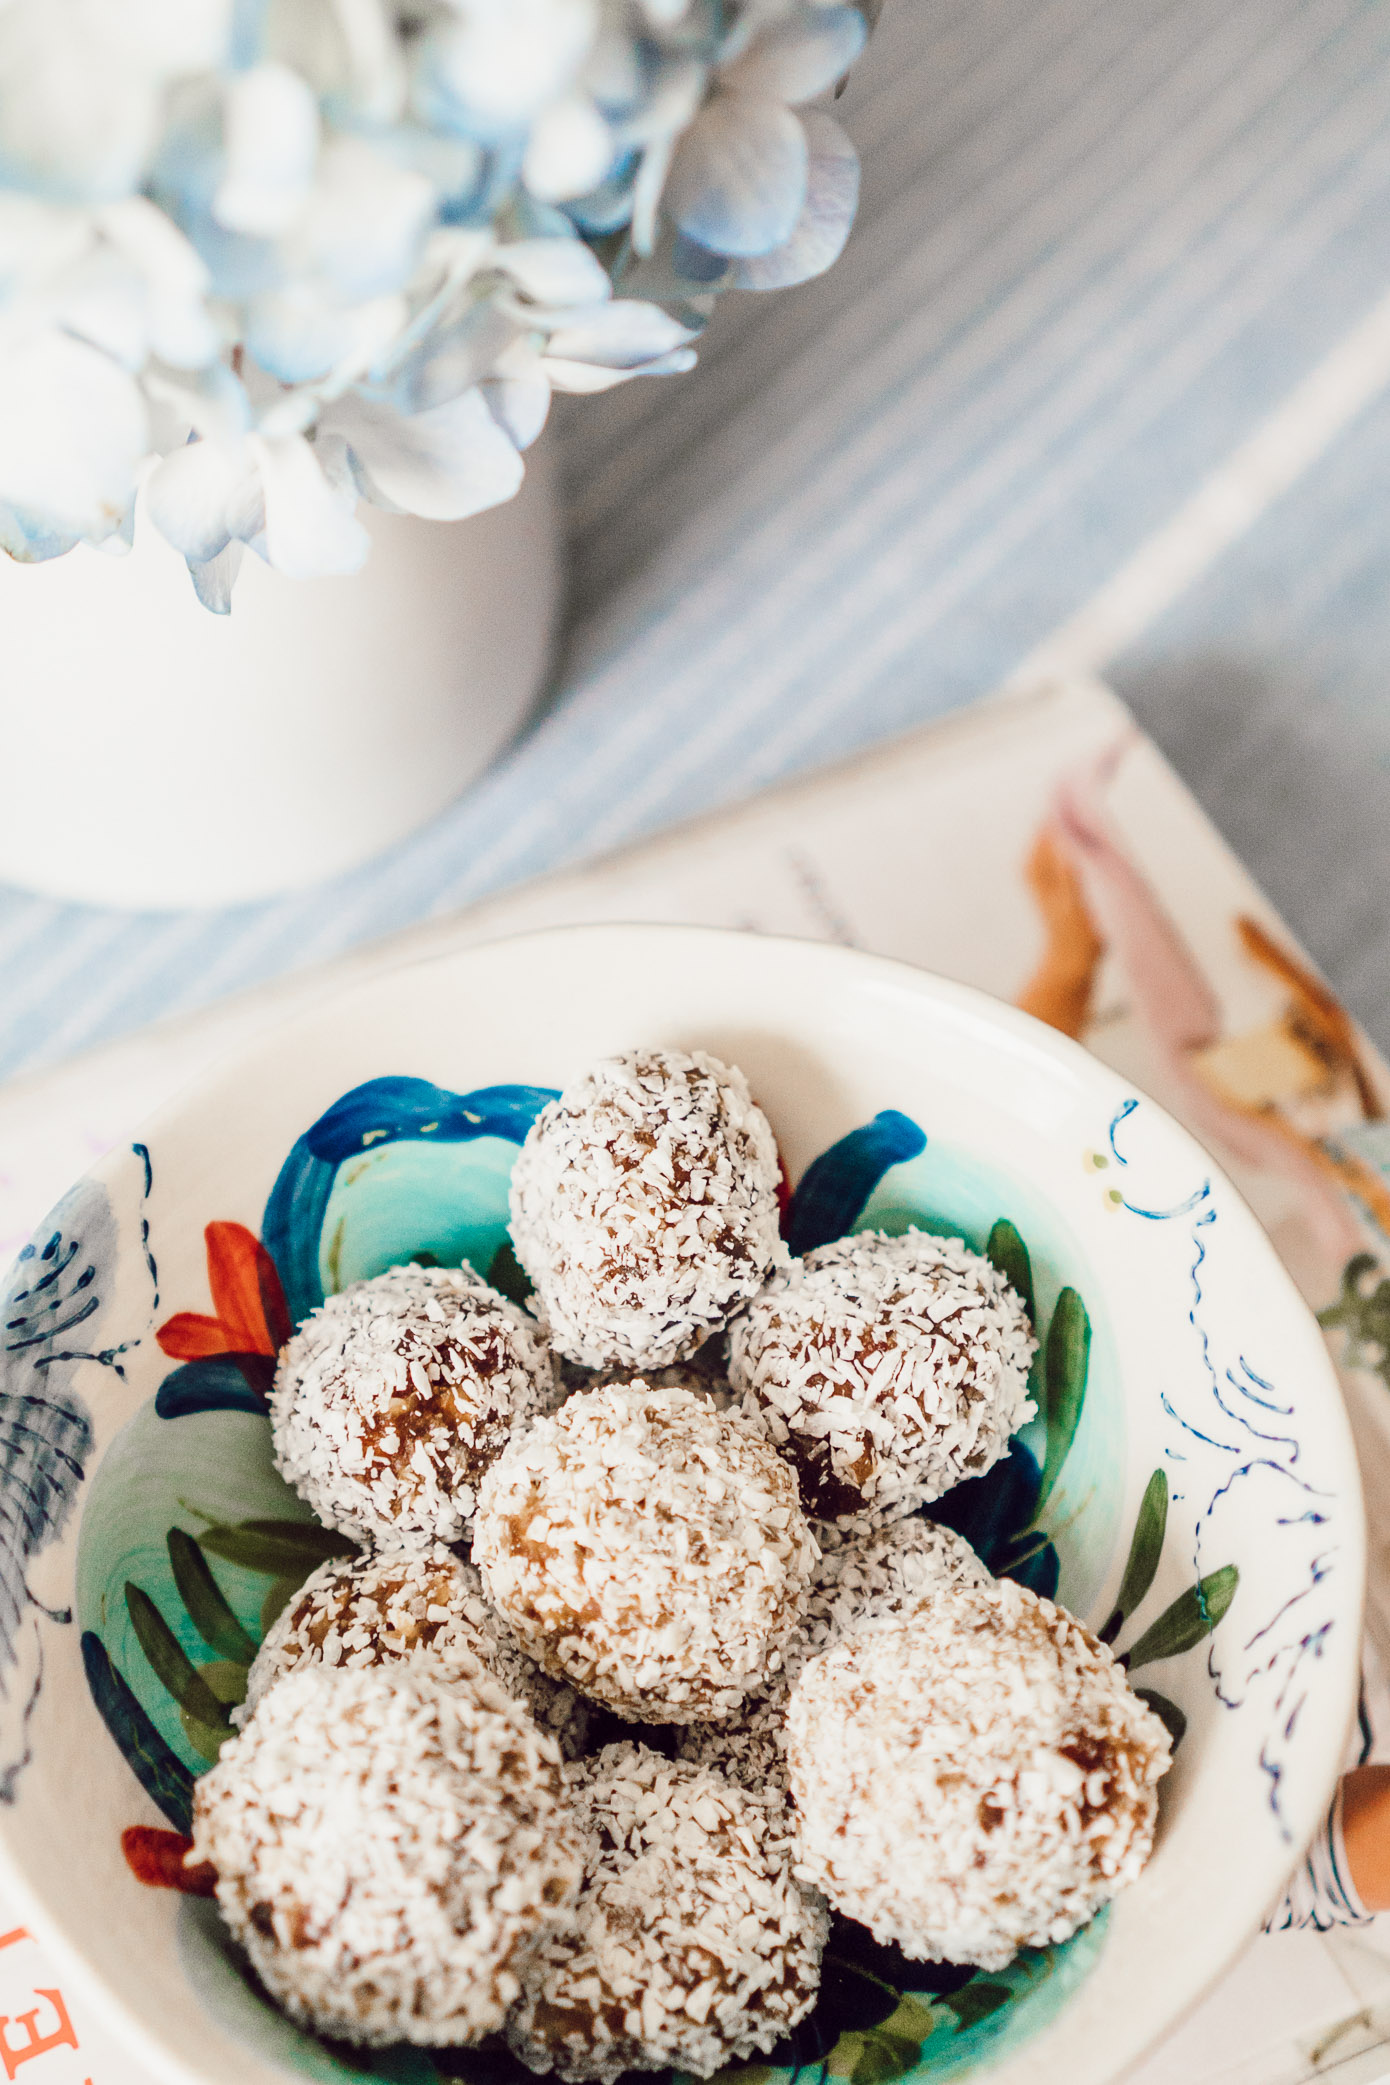 FWTFL Approved Low Carb Snacks & Regular Macro Day Snacks featured on Louella Reese Life & Style Blog | Whole Foods Coconut Date Ball Dupe